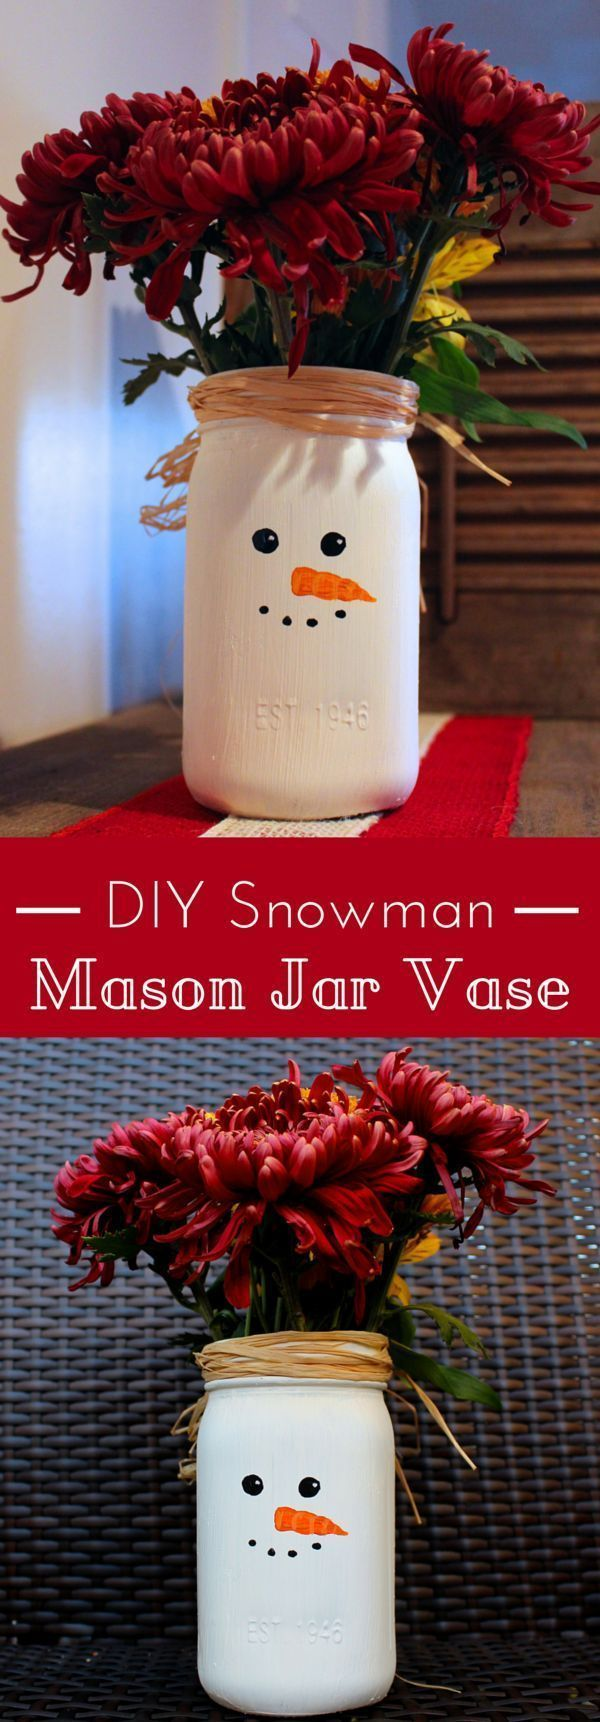 Simple DIY Snowman Mason Jar Vase. Easy Christmas decor idea also makes the perfect gift. Easy crafts to do with your kids or just for yourself.